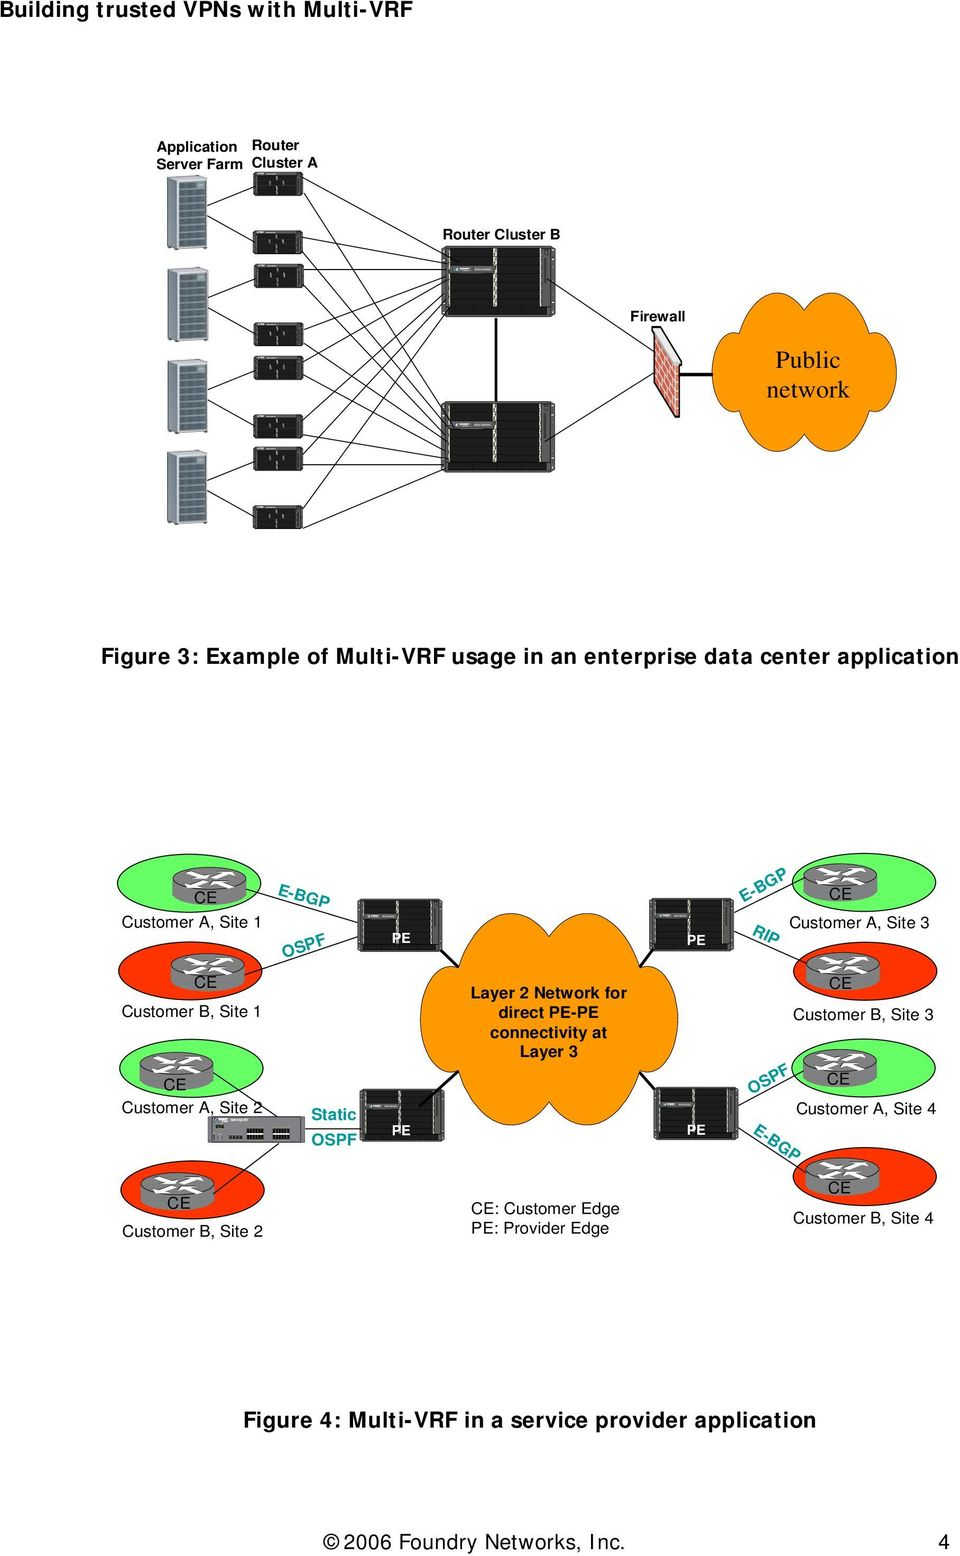 Public network Figure 3: Example of usage in an enterprise data center application RIP Customer A, Site 3 FastIronEdgeX424 Static Layer 2 Network for direct -